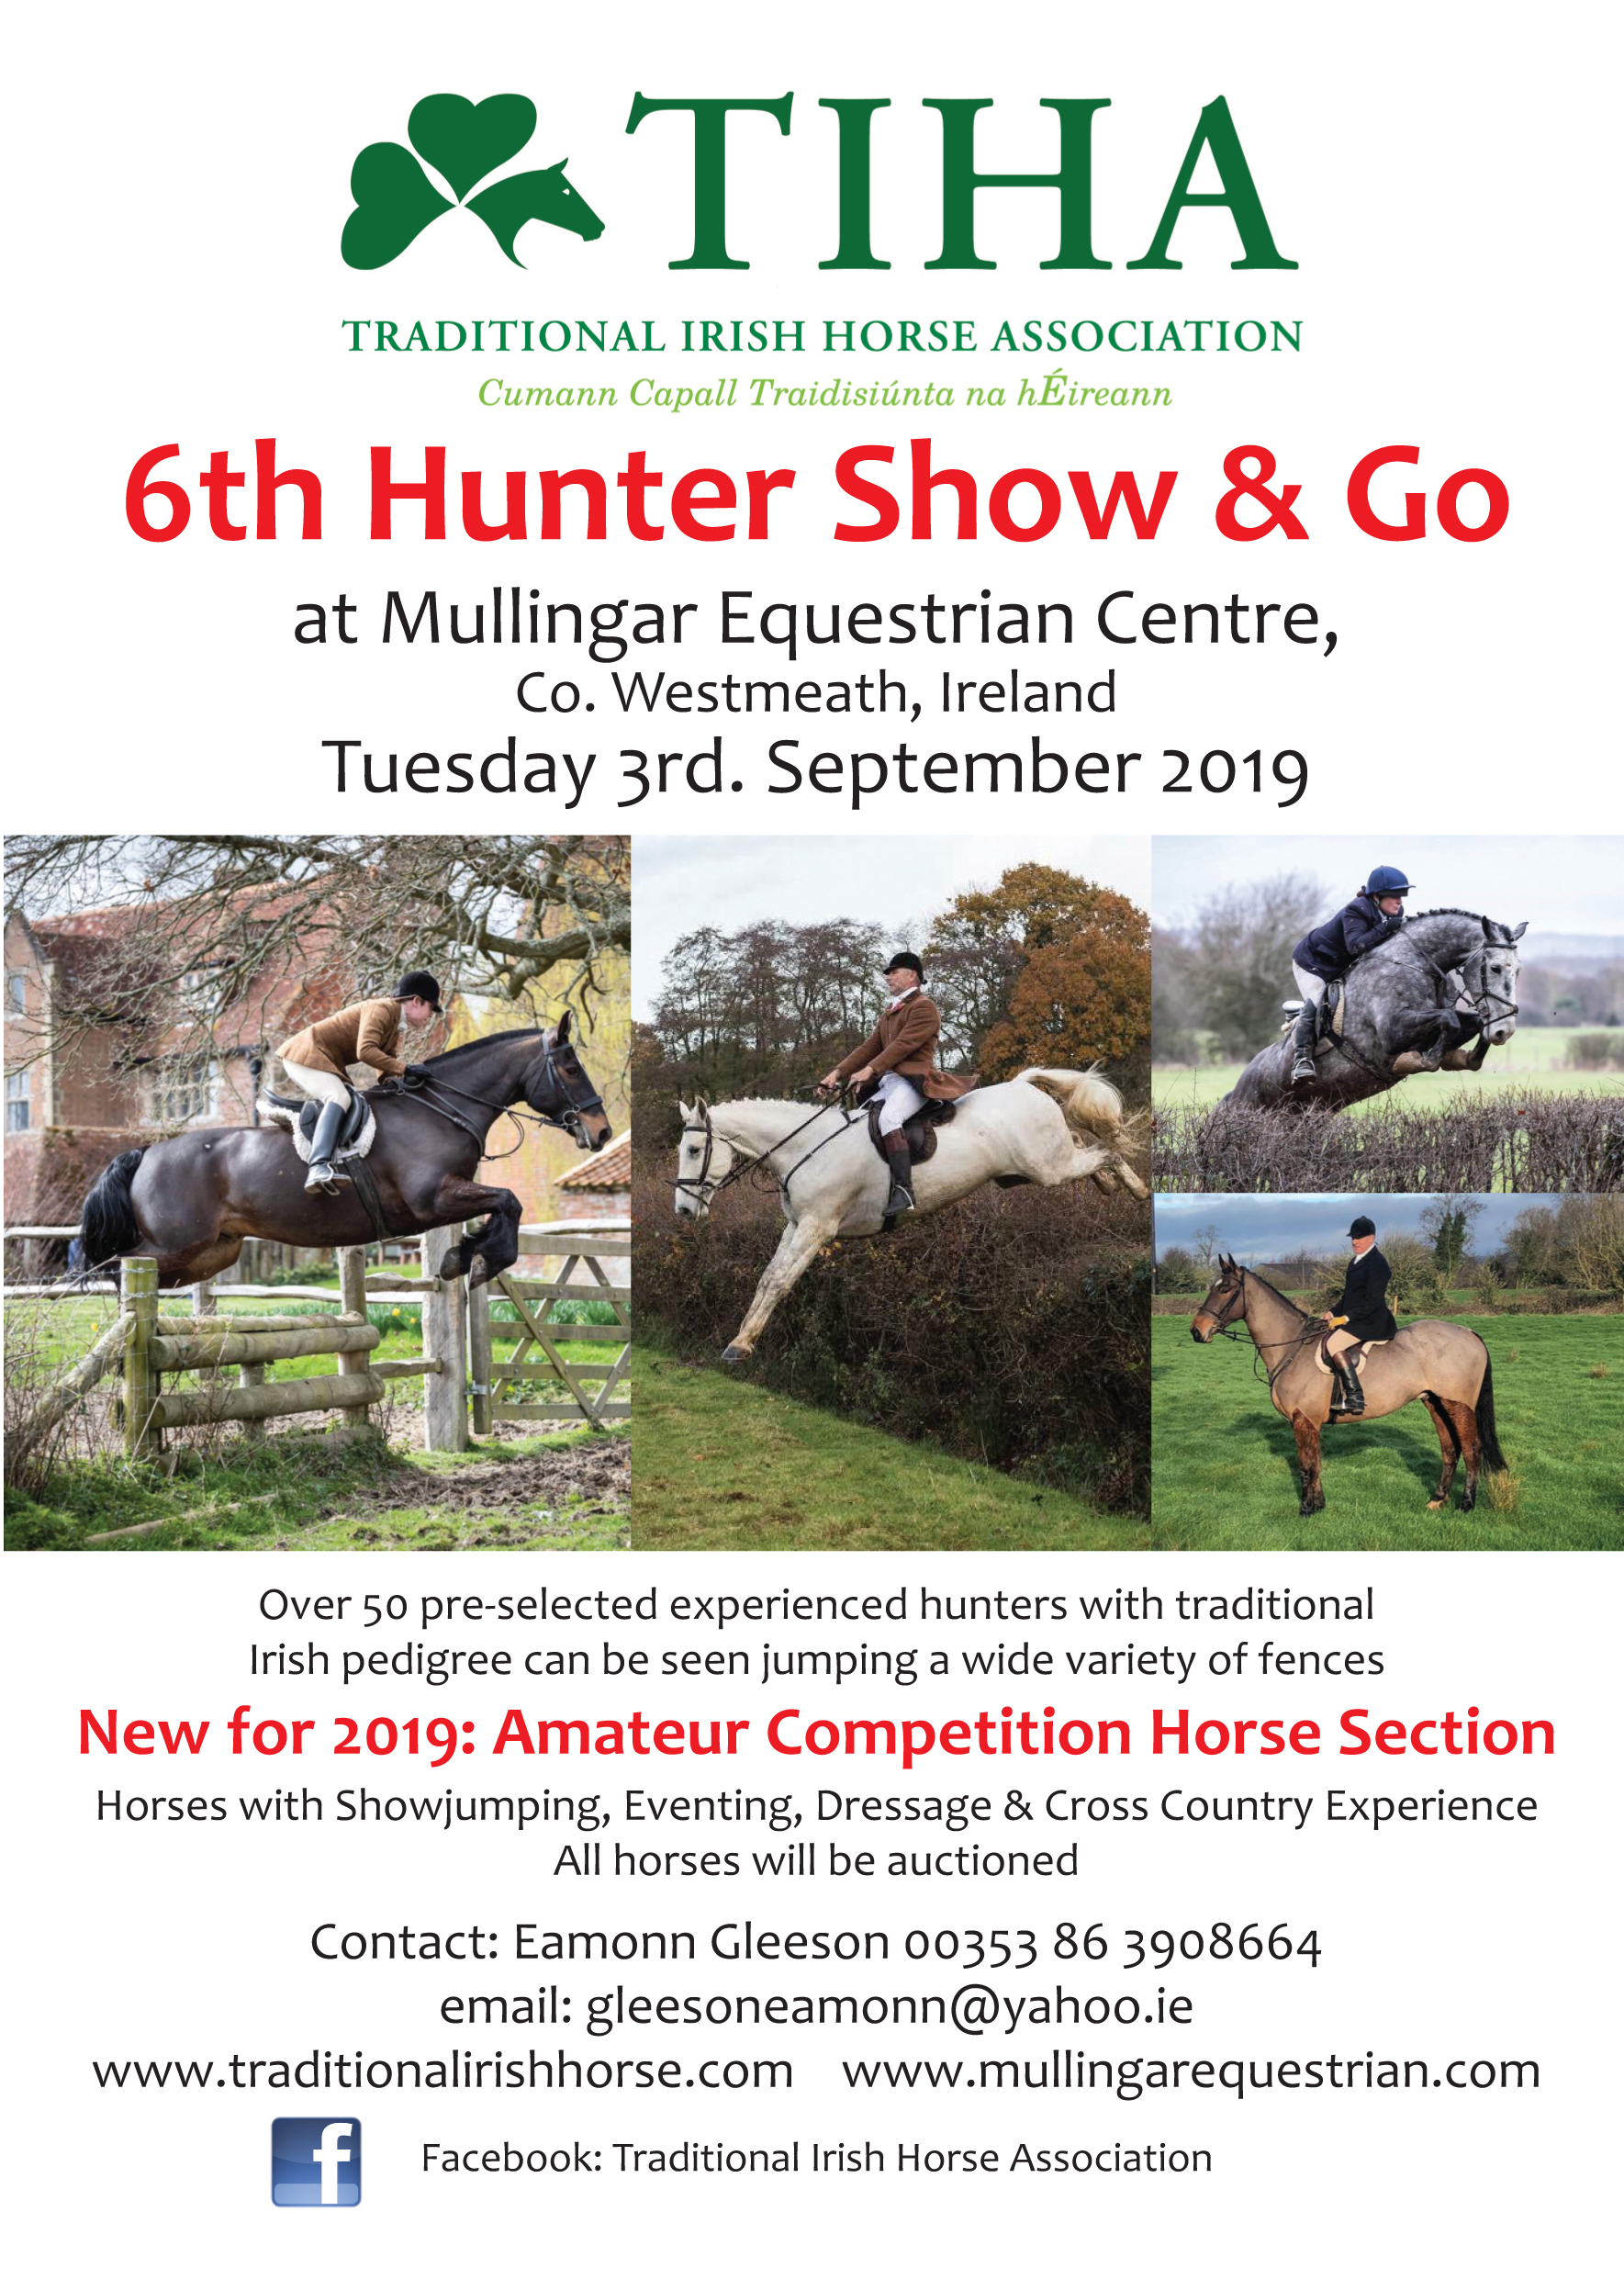 Traditional Irish Horse Association 6th Hunter 'Show & Go'